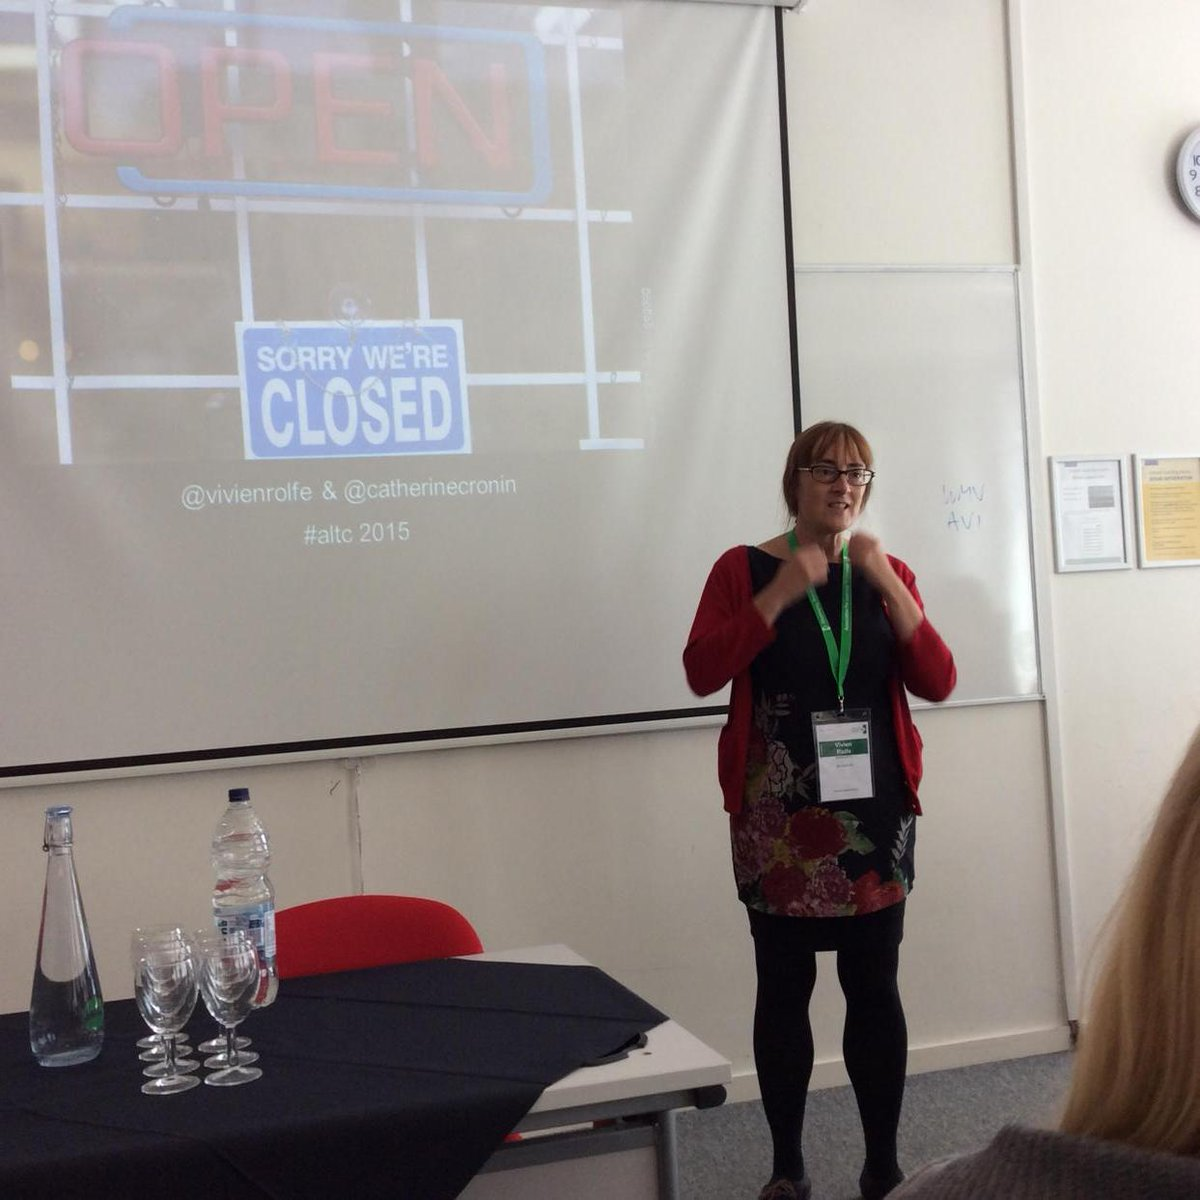 start of @catherinecronin and @VivienRolfe session on #open #altc http://t.co/DxTrRJkxOX